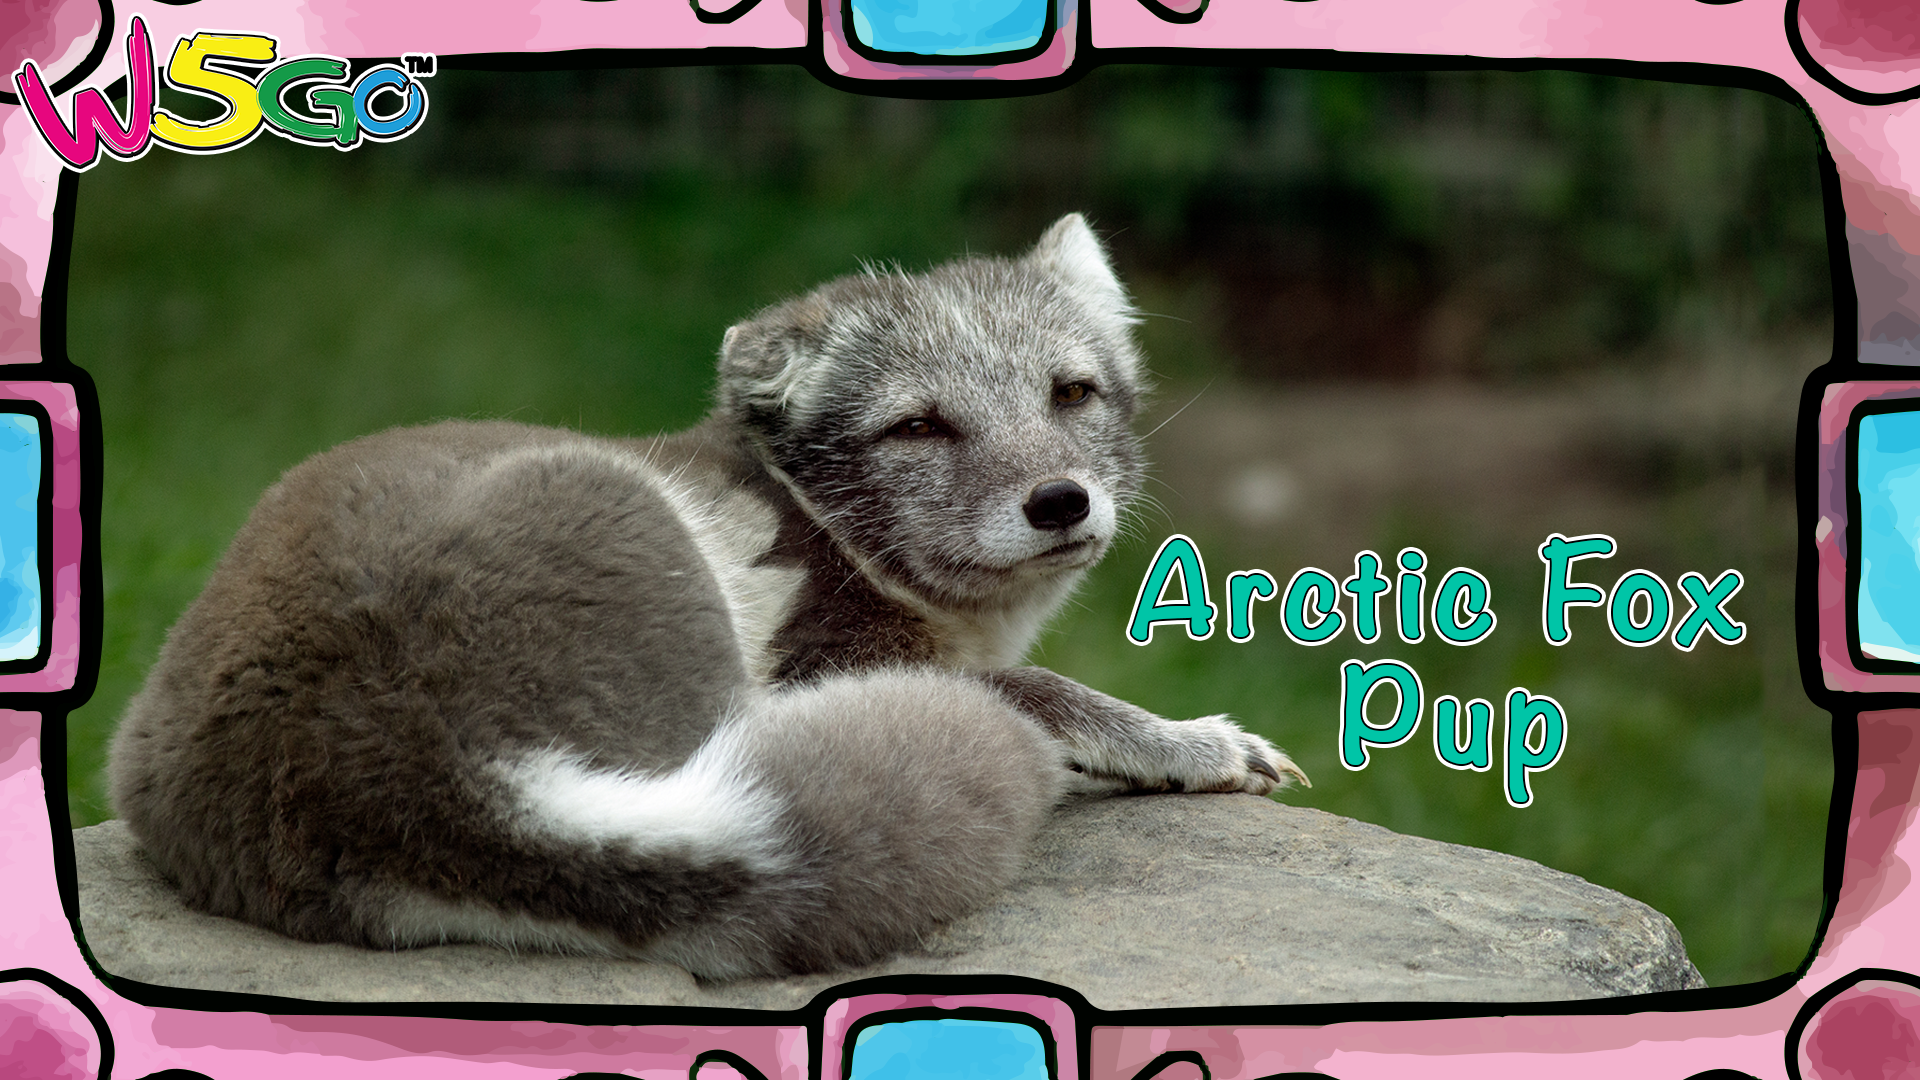 Animal Facts! Arctic Fox does not hibernate and their fur